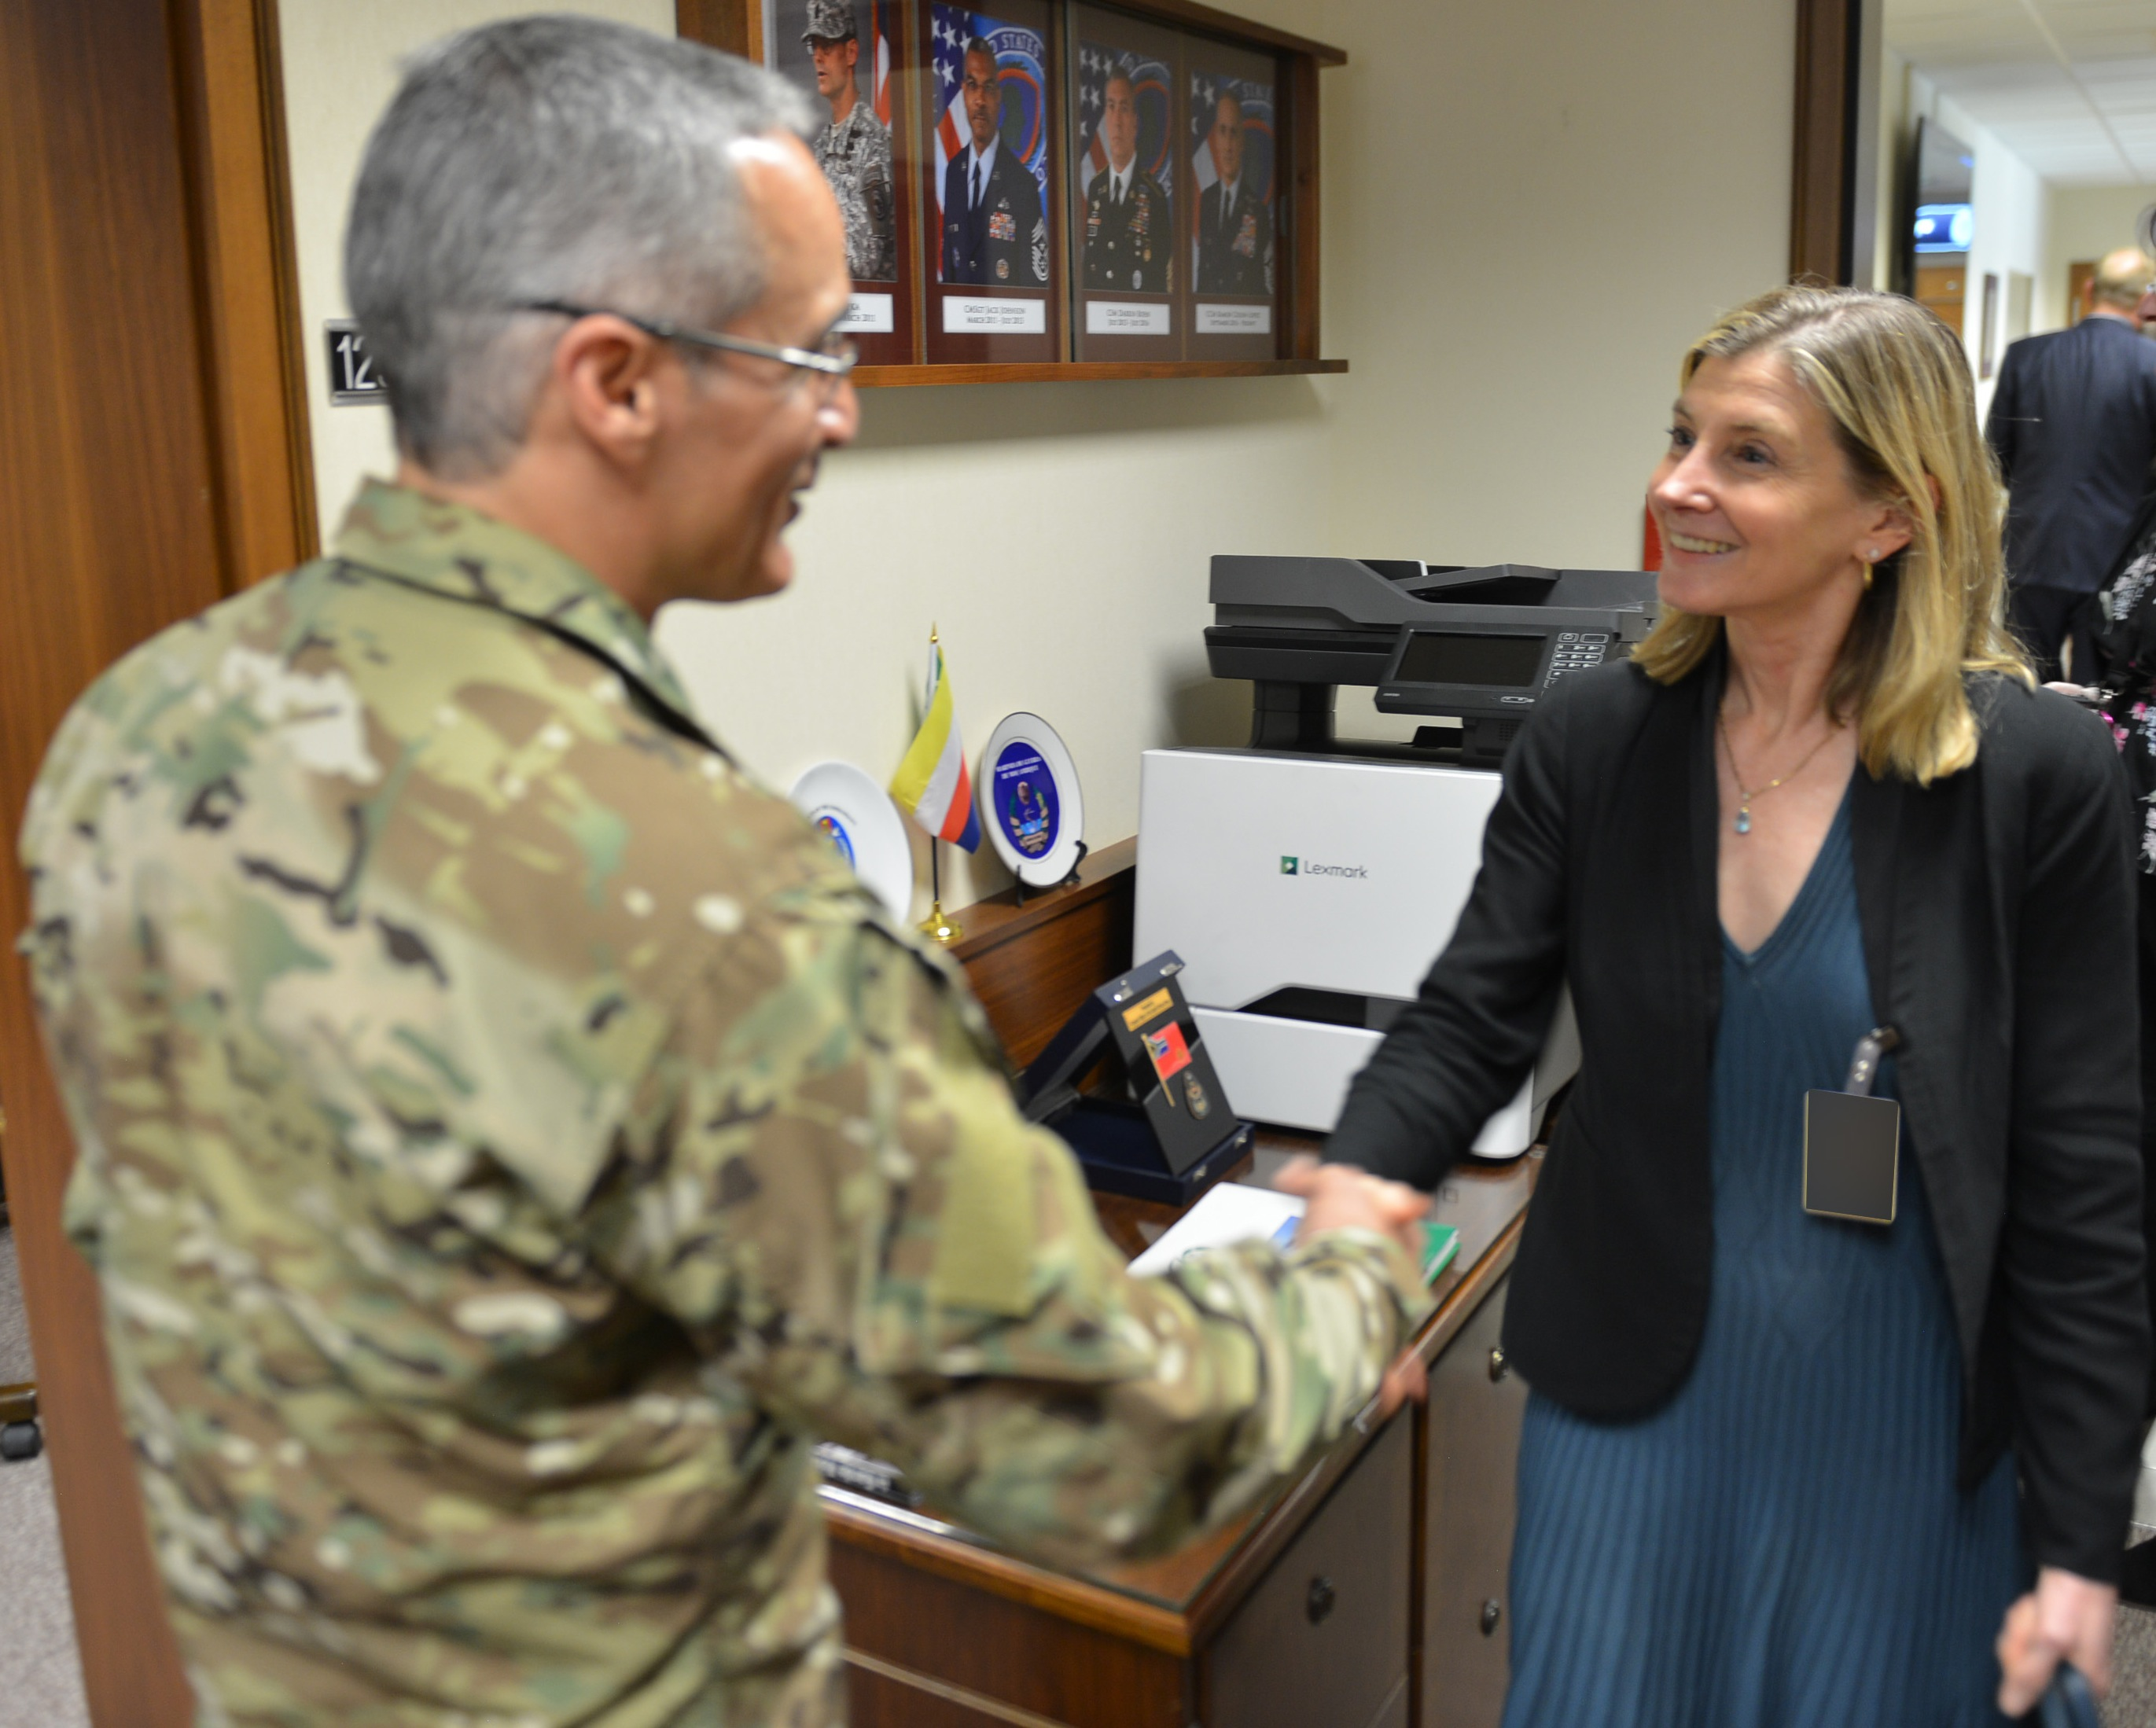 STUTTGART, Germany – The United States Institute of Peace President, Nancy Lindborg, shakes hands with Chief Master Sgt. Ramon Colon-Lopez, Senior Enlisted Leader, U.S. Africa Command, during her visit to the command's headquarters, Stuttgart, Germany. (Photo by Army Staff Sgt. Grady Jones, AFRICOM Public Affairs)